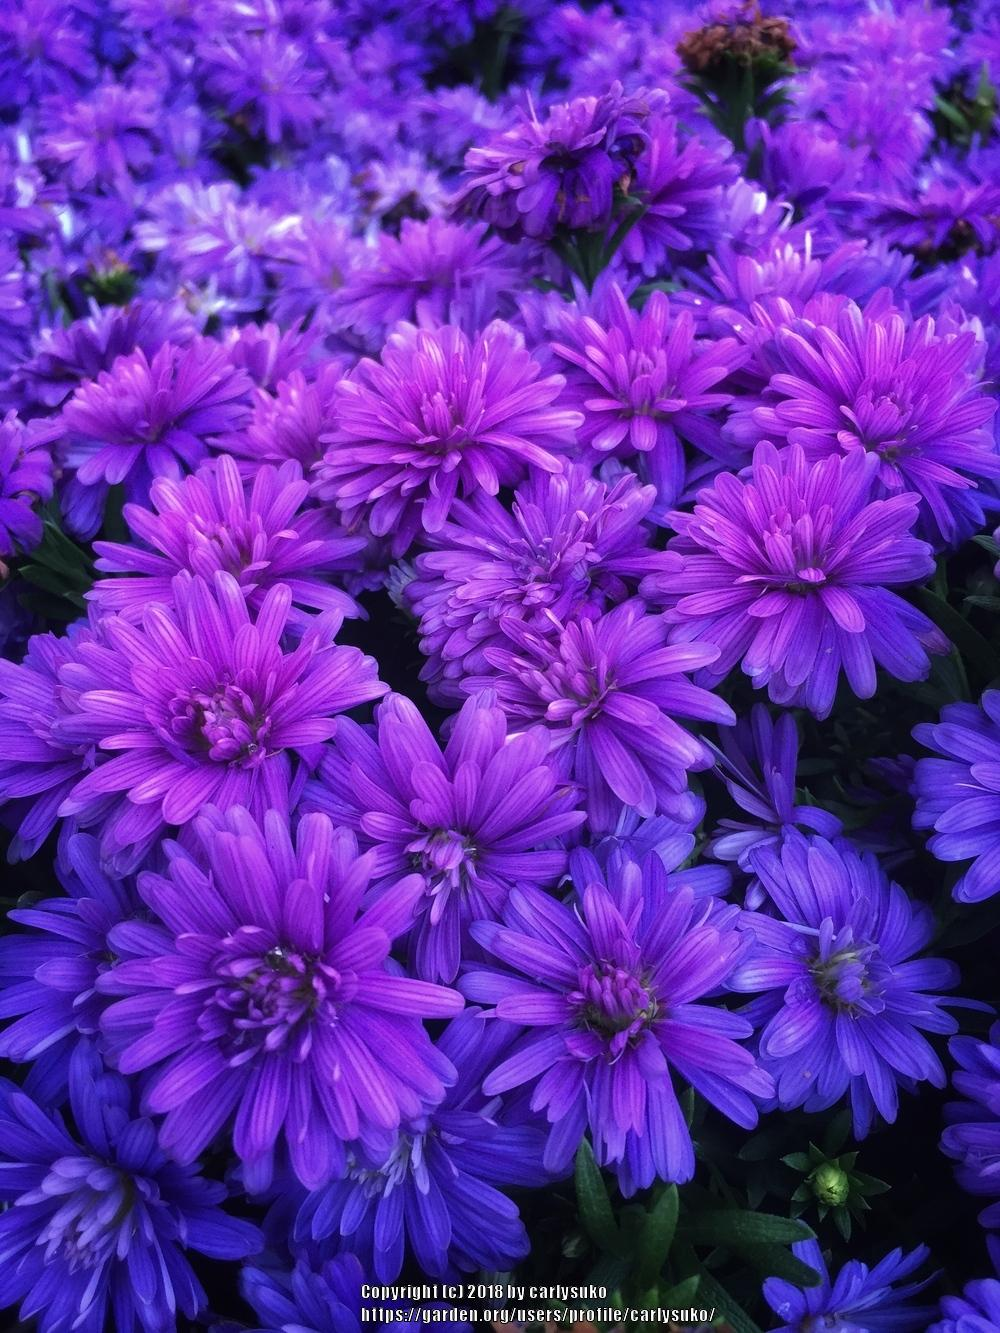 Photo of Aster (Symphyotrichum novi-belgii 'Henry I Purple') uploaded by carlysuko